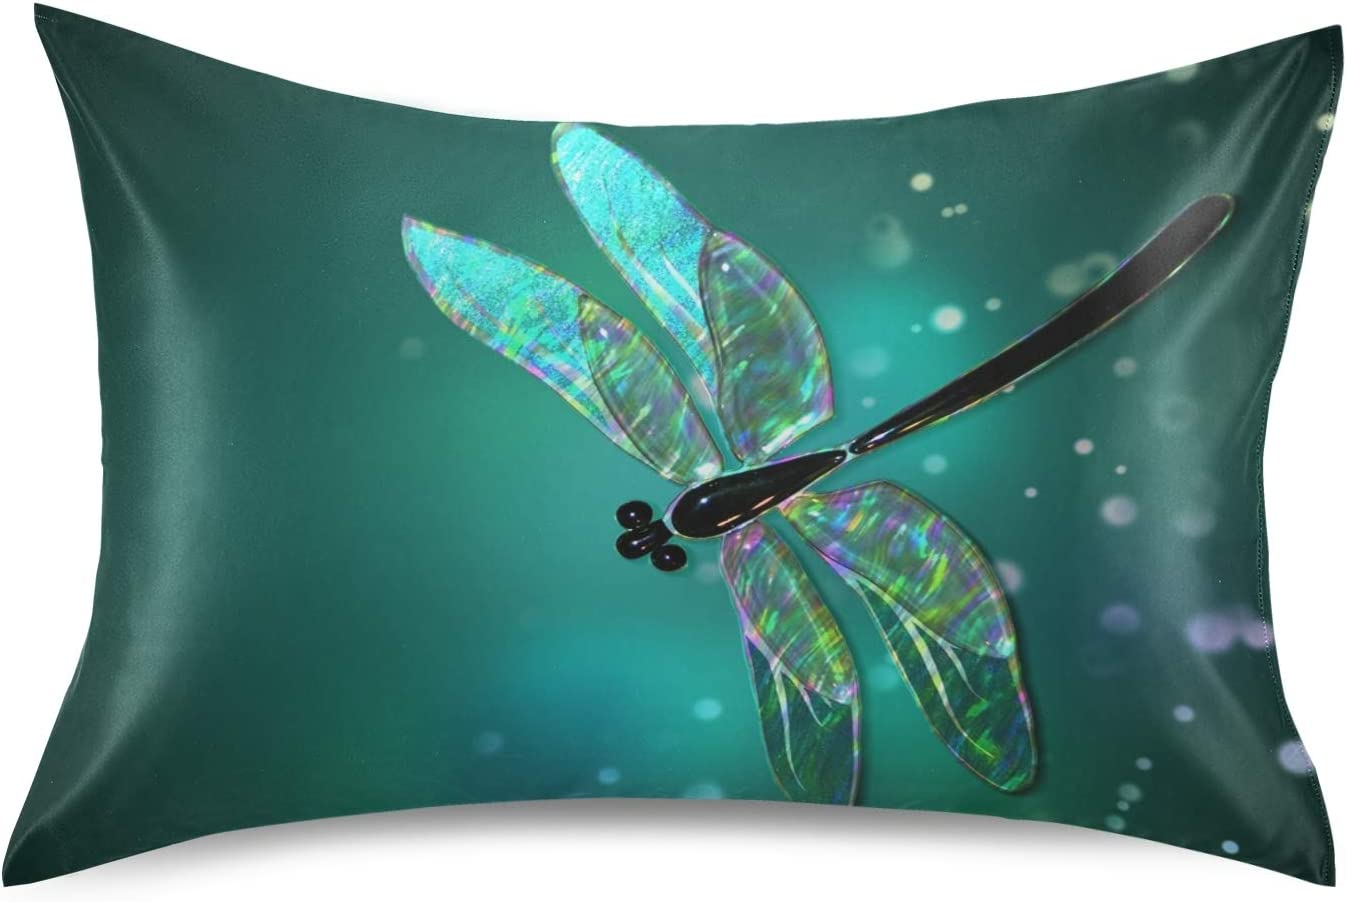 Naivey New life Satin Pillowcase for Hair and Skin 5% OFF Dragonfly Patter Glass